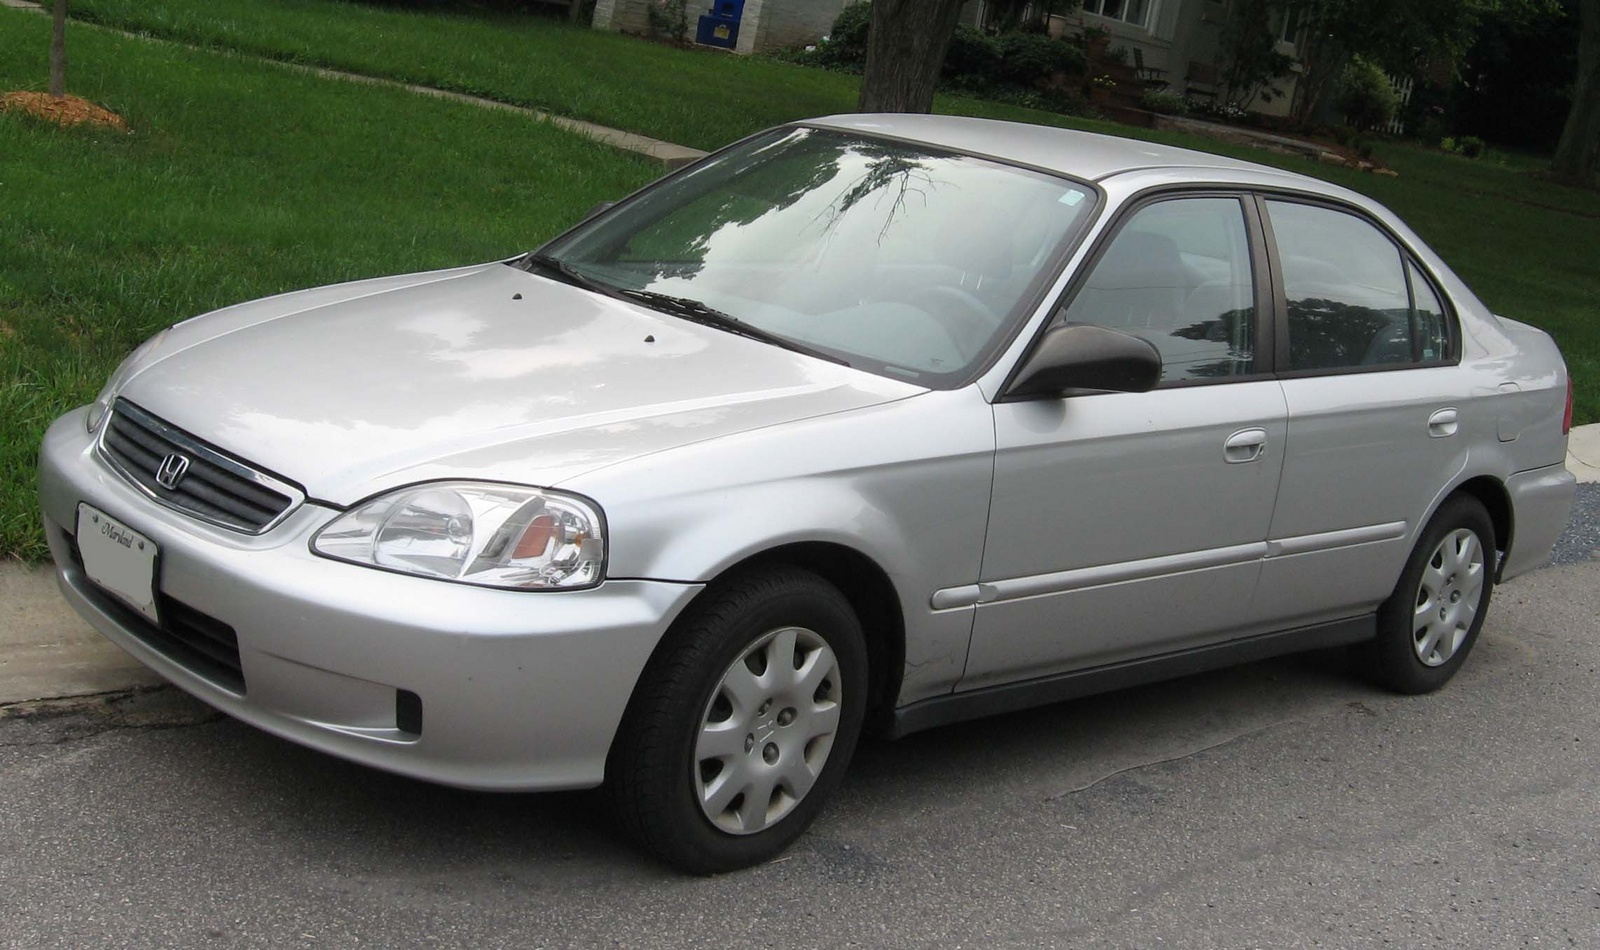 1999 Honda Civic - Pictures - CarGurus